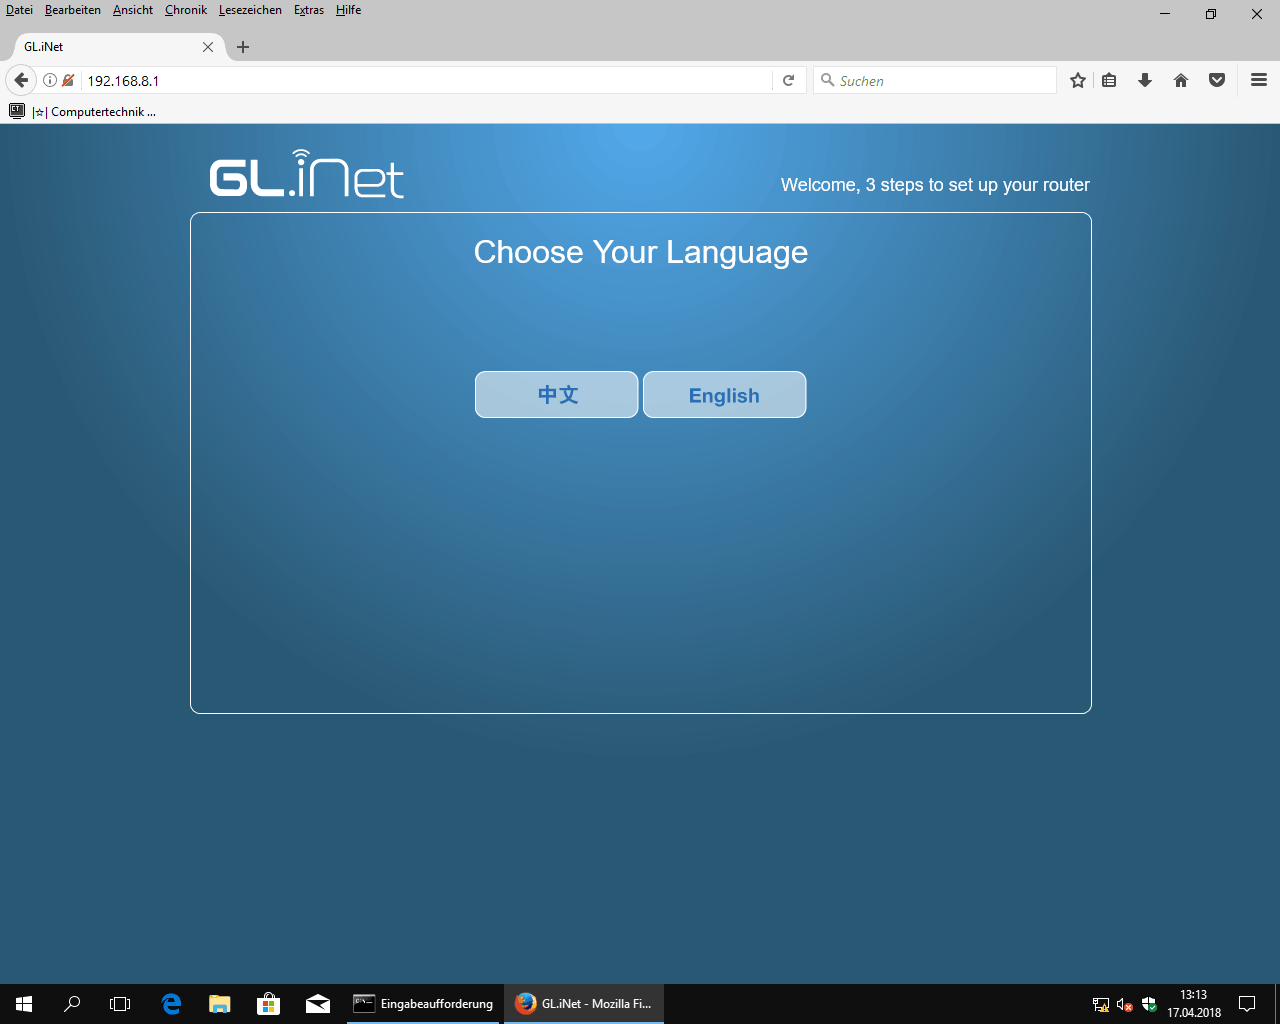 GL.iNet Router Webconfig choose language